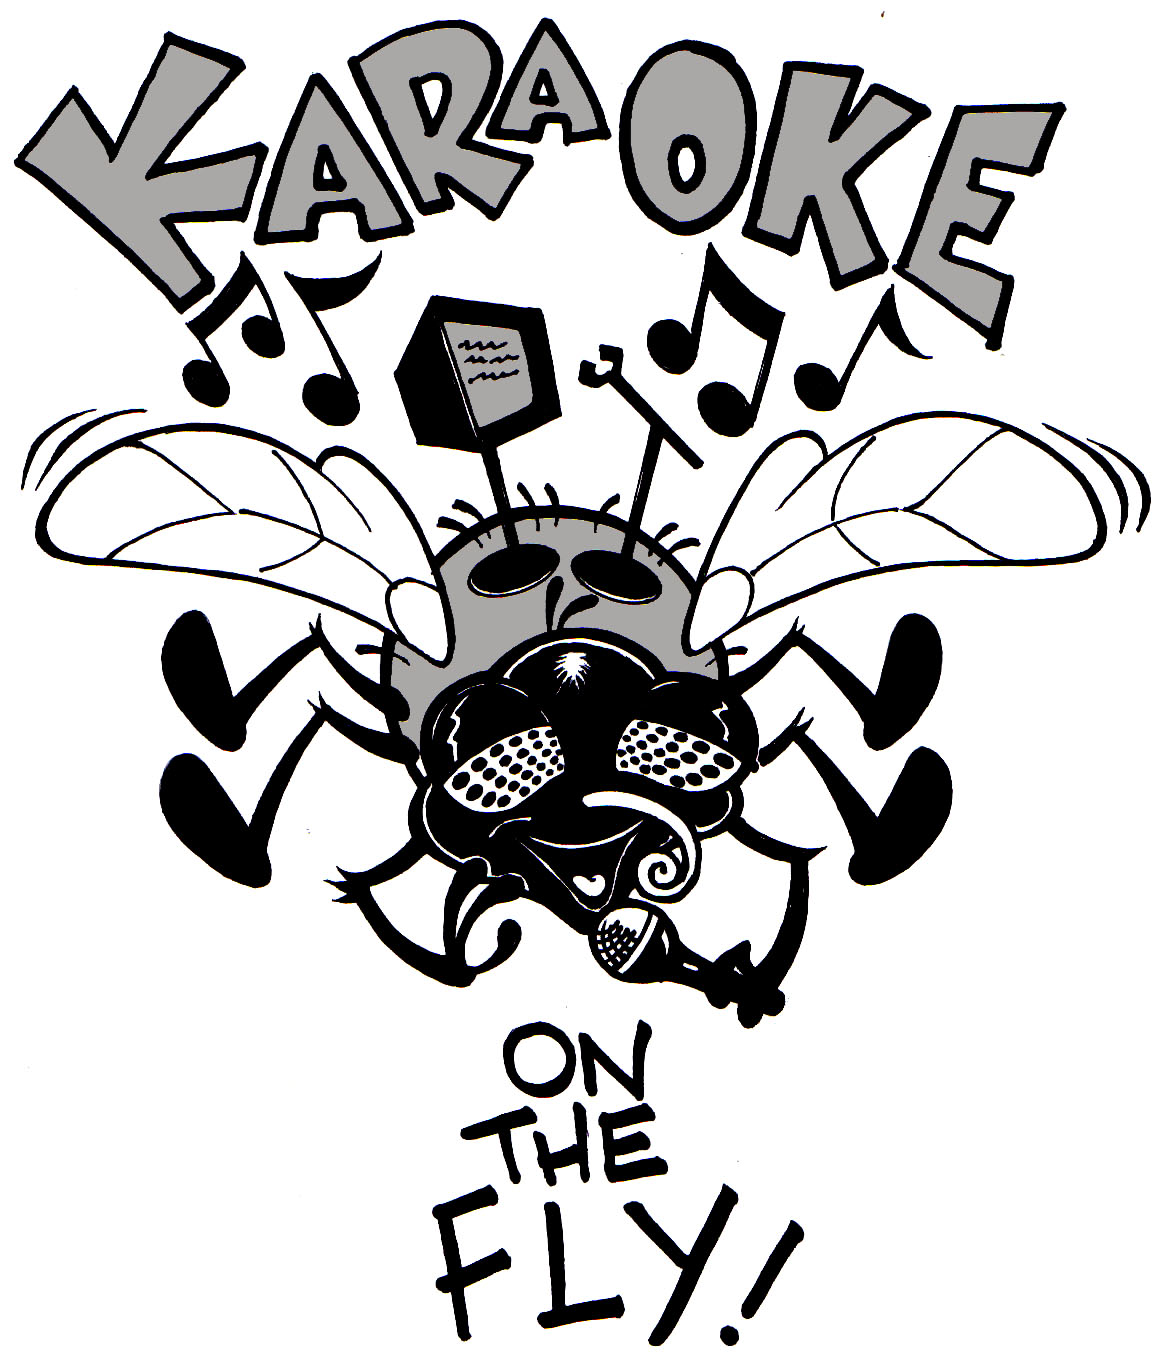 Shirt design concepts - I Was Asked To Design The Artwork For A T Shirt Design For A Local Karaoke And Dj Service Here Are 4 Similar Yet Different Concepts